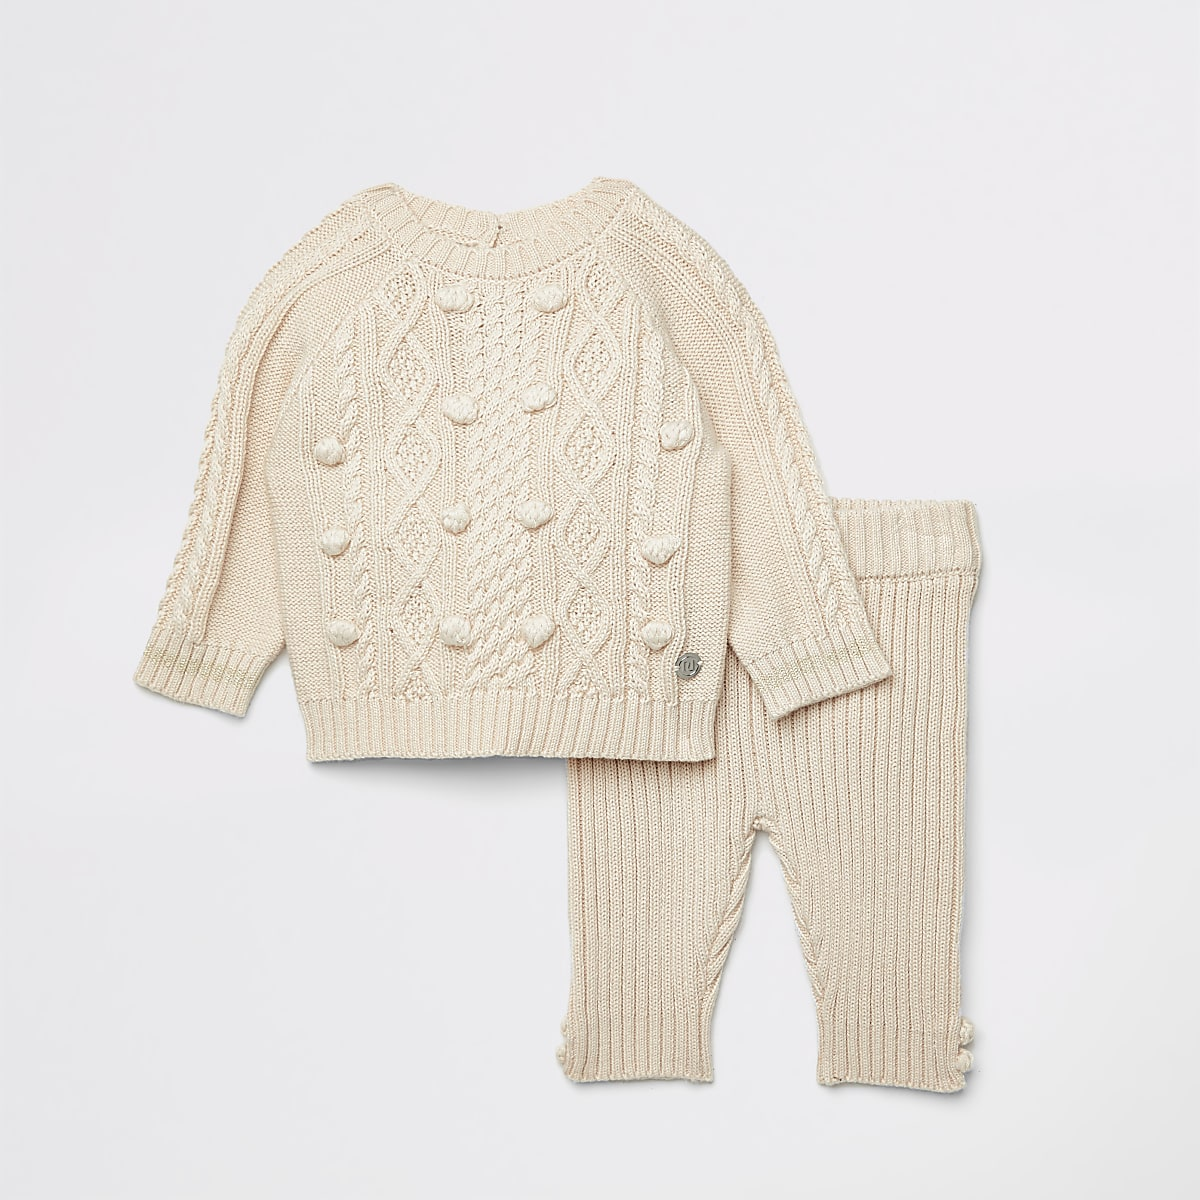 Baby cream knitted bobble jumper outfit